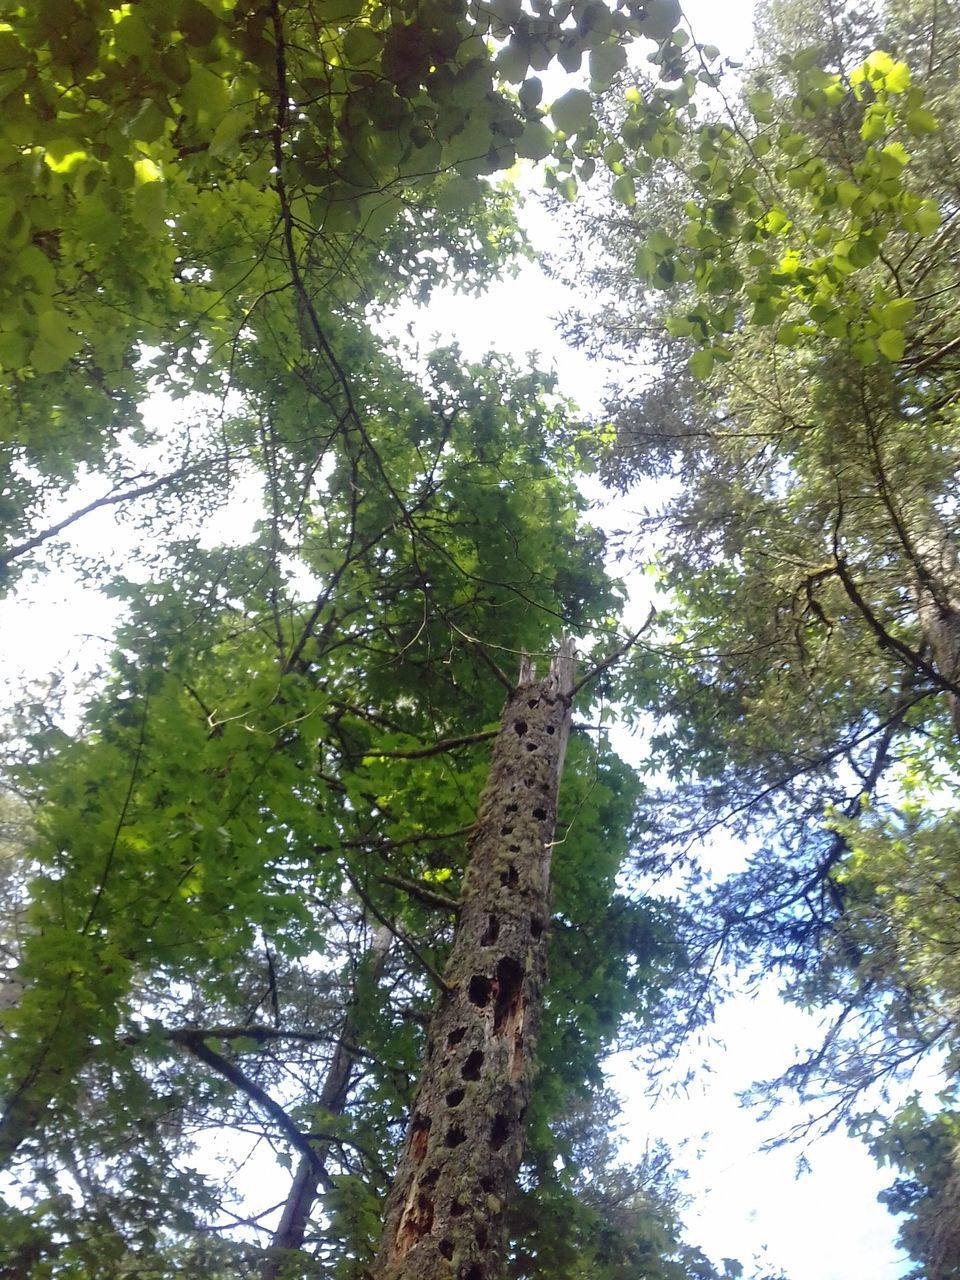 tree, low angle view, growth, tree trunk, nature, branch, green color, beauty in nature, day, no people, forest, outdoors, tranquility, bamboo - plant, sky